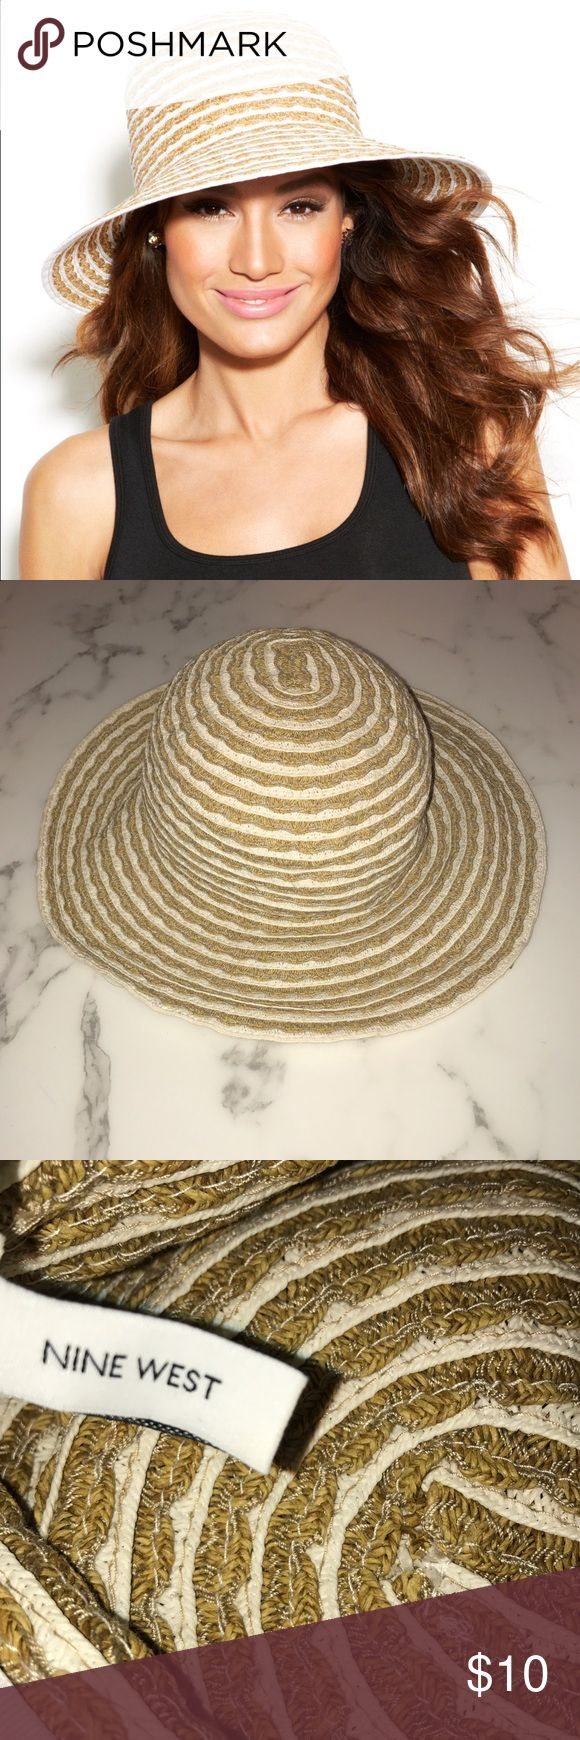 Nine West PACKABLE Striped Down-brim Sun Hat Incredibly convenient that you can squish this baby into your suitcase and/or beach bag! That feature has helped to keep it in good condition, as most sun hats show wear and age via kinks in the weaving, loss of shape, etc. This one is flexible! That said, price reflects the fact that it's one of my older sun hats. 👒 don't forget sunscreen! Nine West Accessories Hats